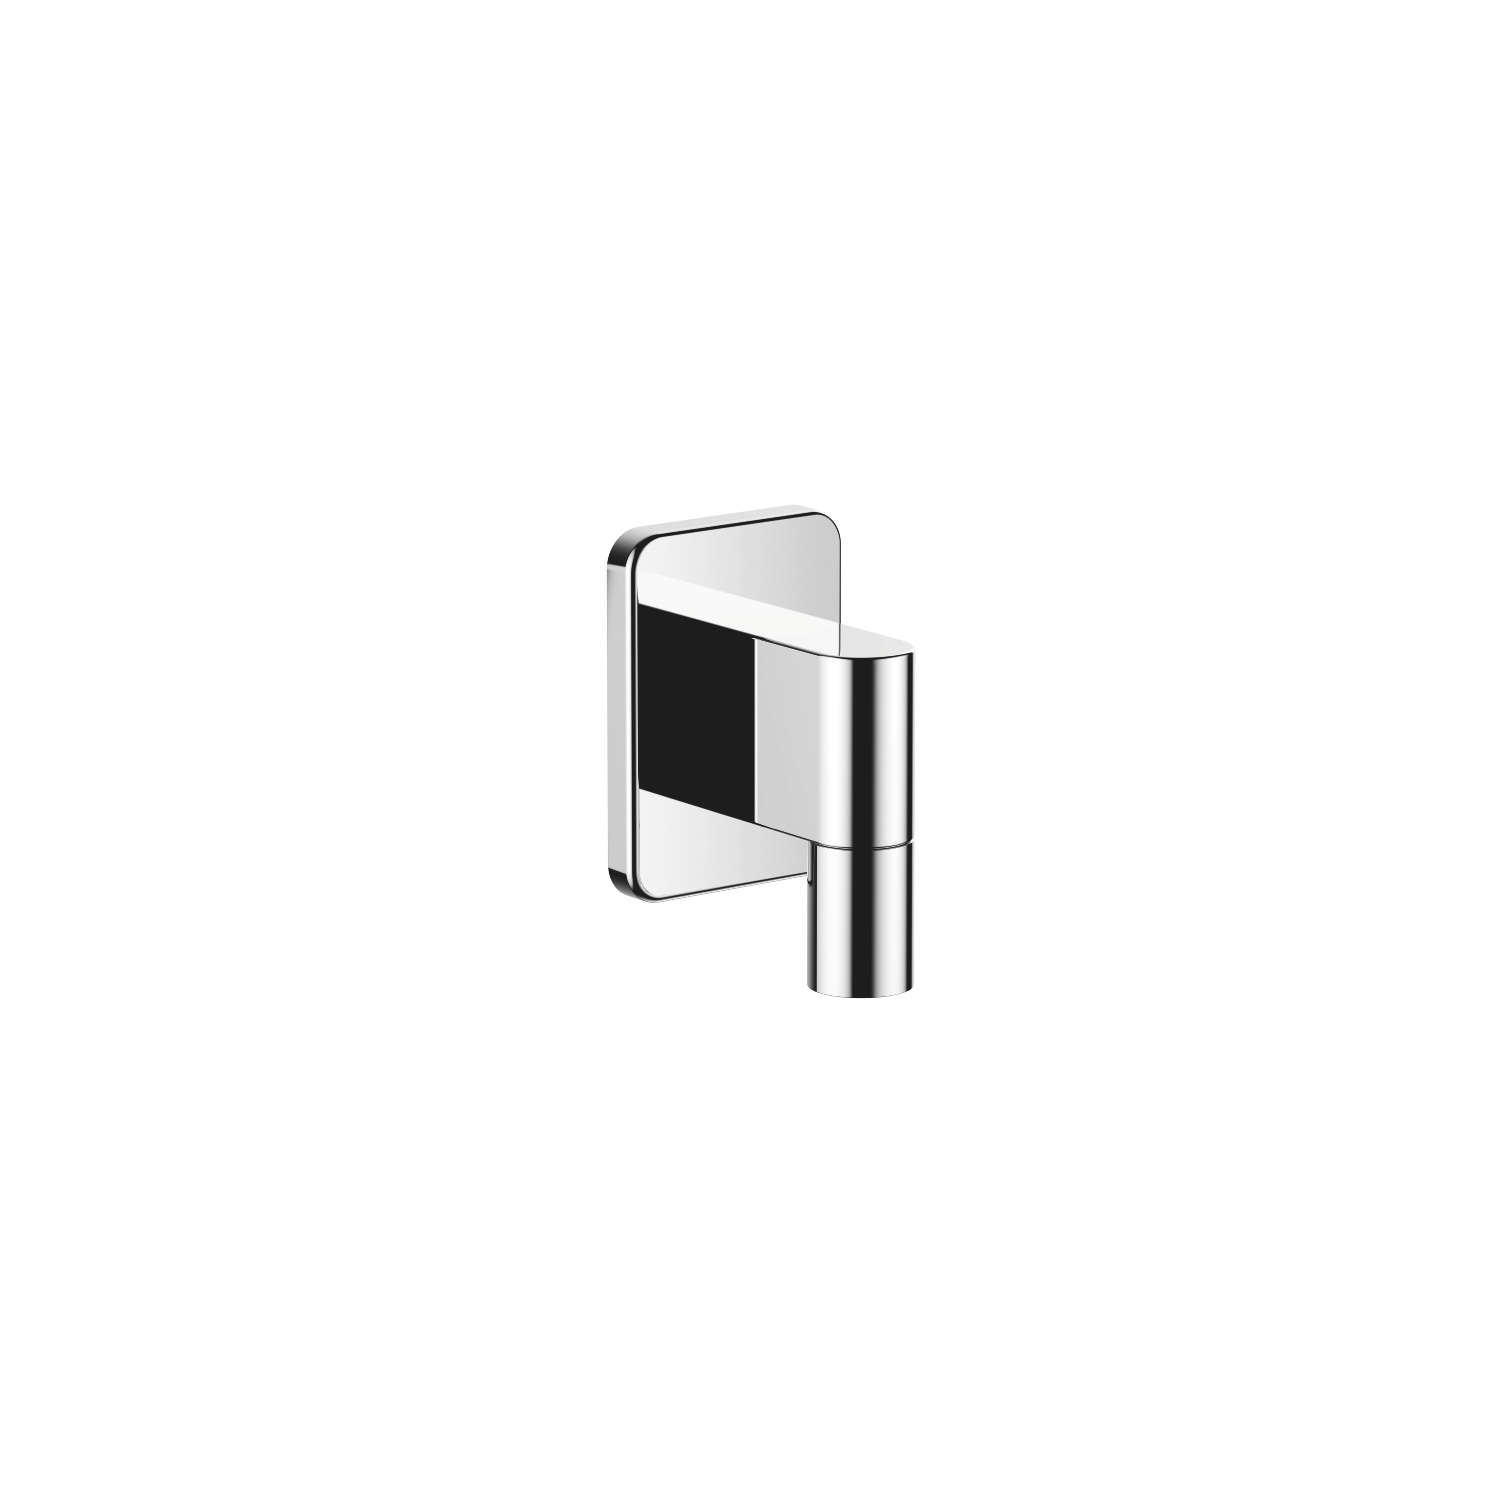 Wall elbow - polished chrome 28 450 710-00 Dornbracht